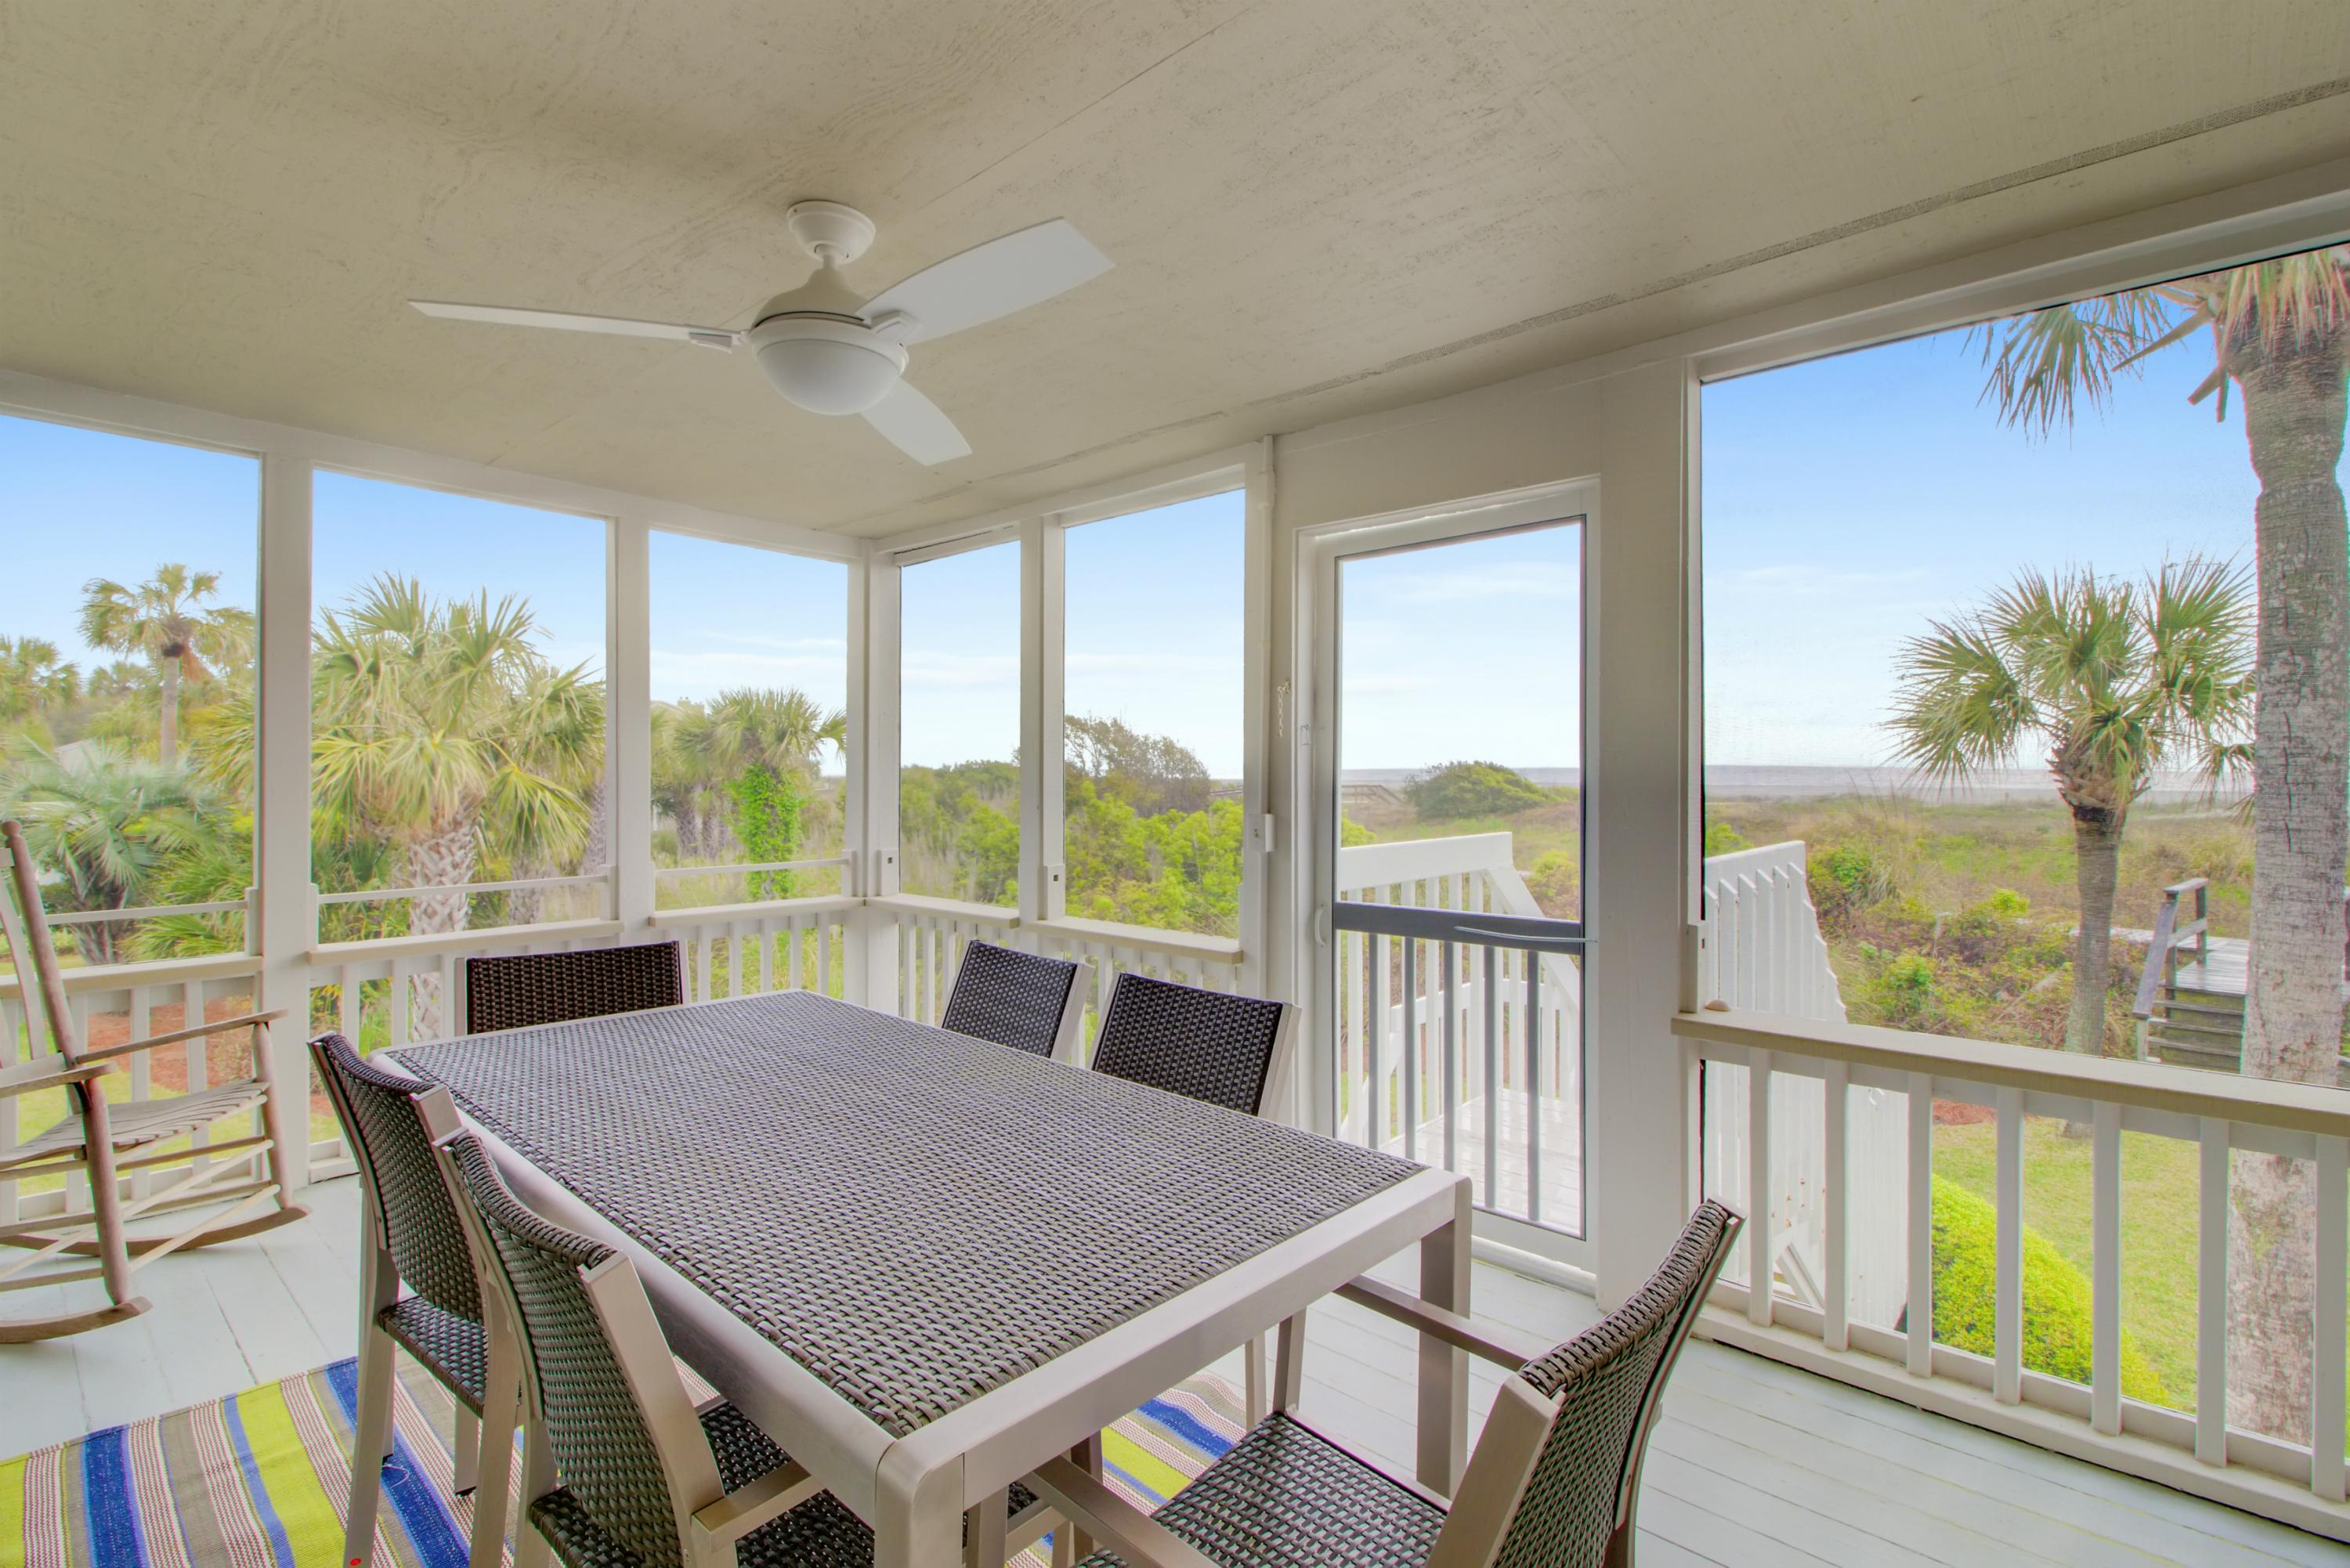 Beach Club Villas Homes For Sale - 65 Beach Club Villas, Isle of Palms, SC - 11